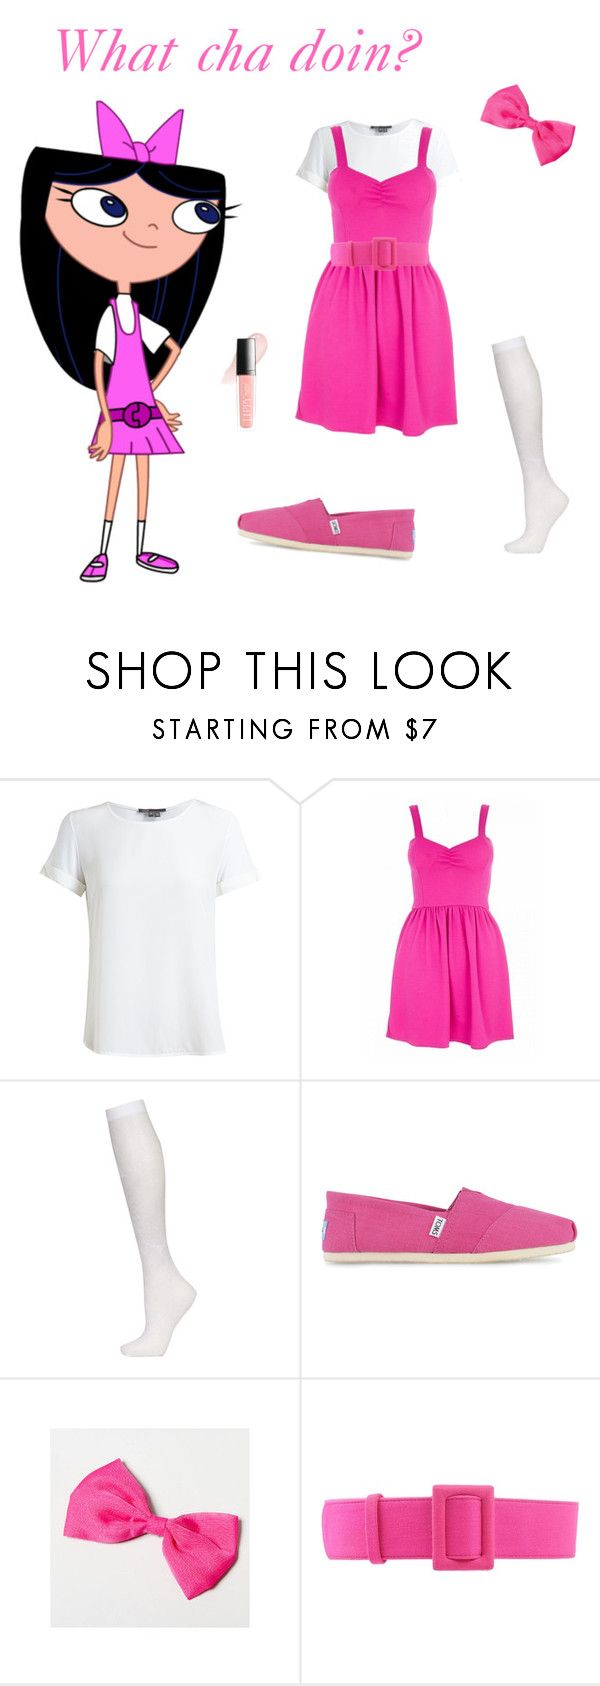 """Isabella-Phineas and Ferb"" by mnm0323 ❤ liked on Polyvore featuring Vince, Quiz, Topshop, TOMS, FAUSTO PUGLISI and Butter London"